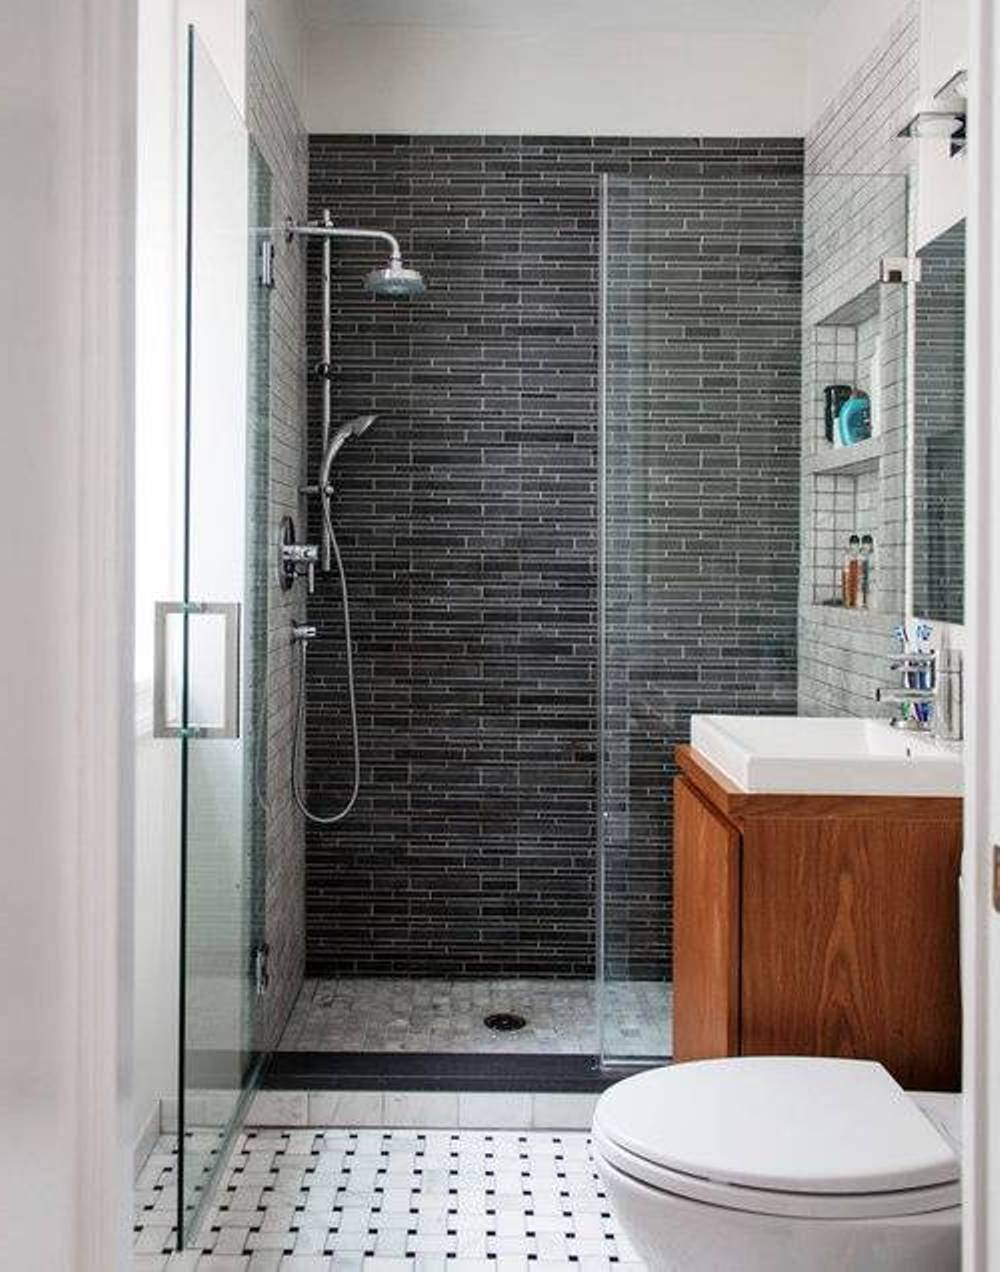 diy-design-ideas-for-top-simple-bathroom-tile-designs-with-simple-bathroom-tile-designs-sleek-bathroom-ideas-with-motive-flooring